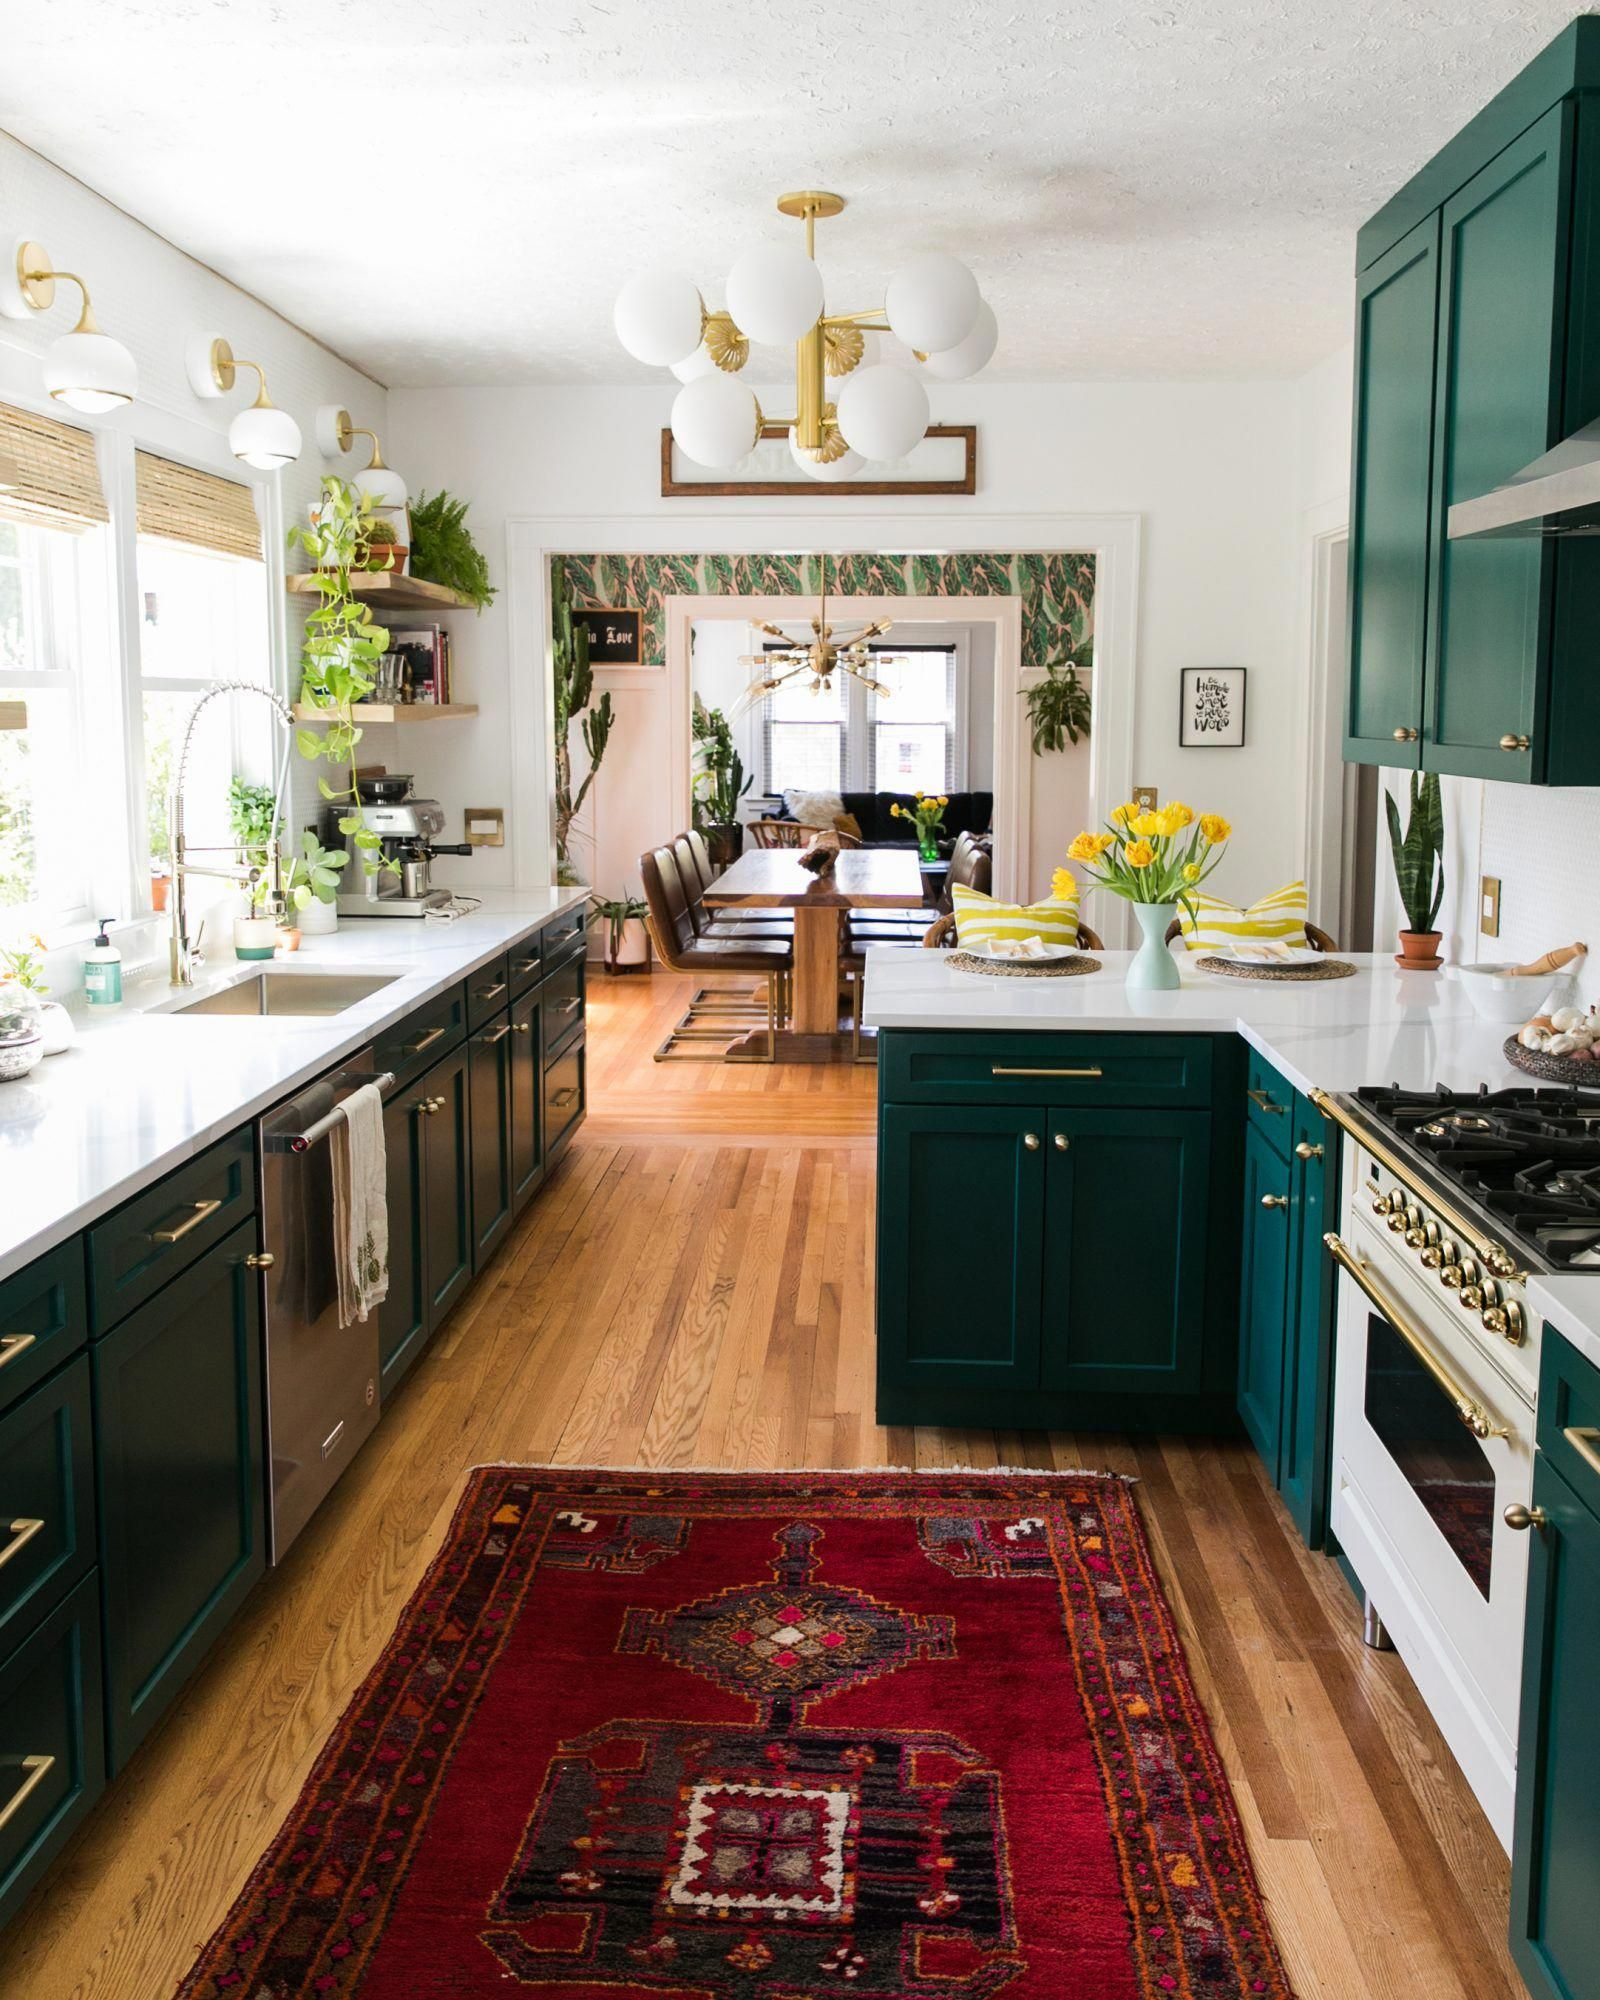 Renovate and relook kitchen shelves in 2020 Kitchen trends